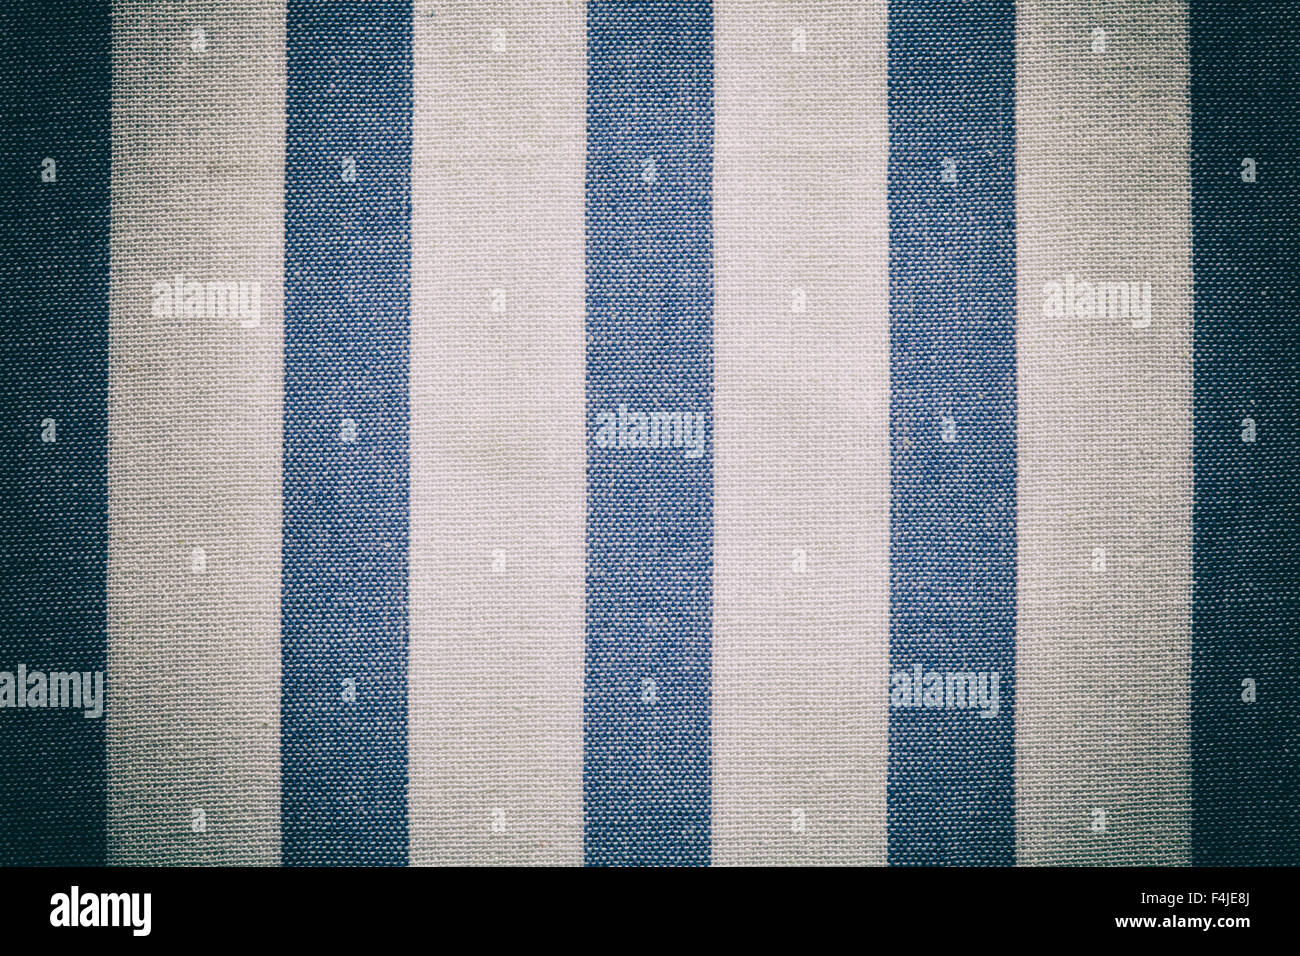 Blue tablecloth background - Stock Photo Blue White Vintage Texture Fabric Cotton Background Cotton Textile Tablecloth Gingham Old Vintage Effect